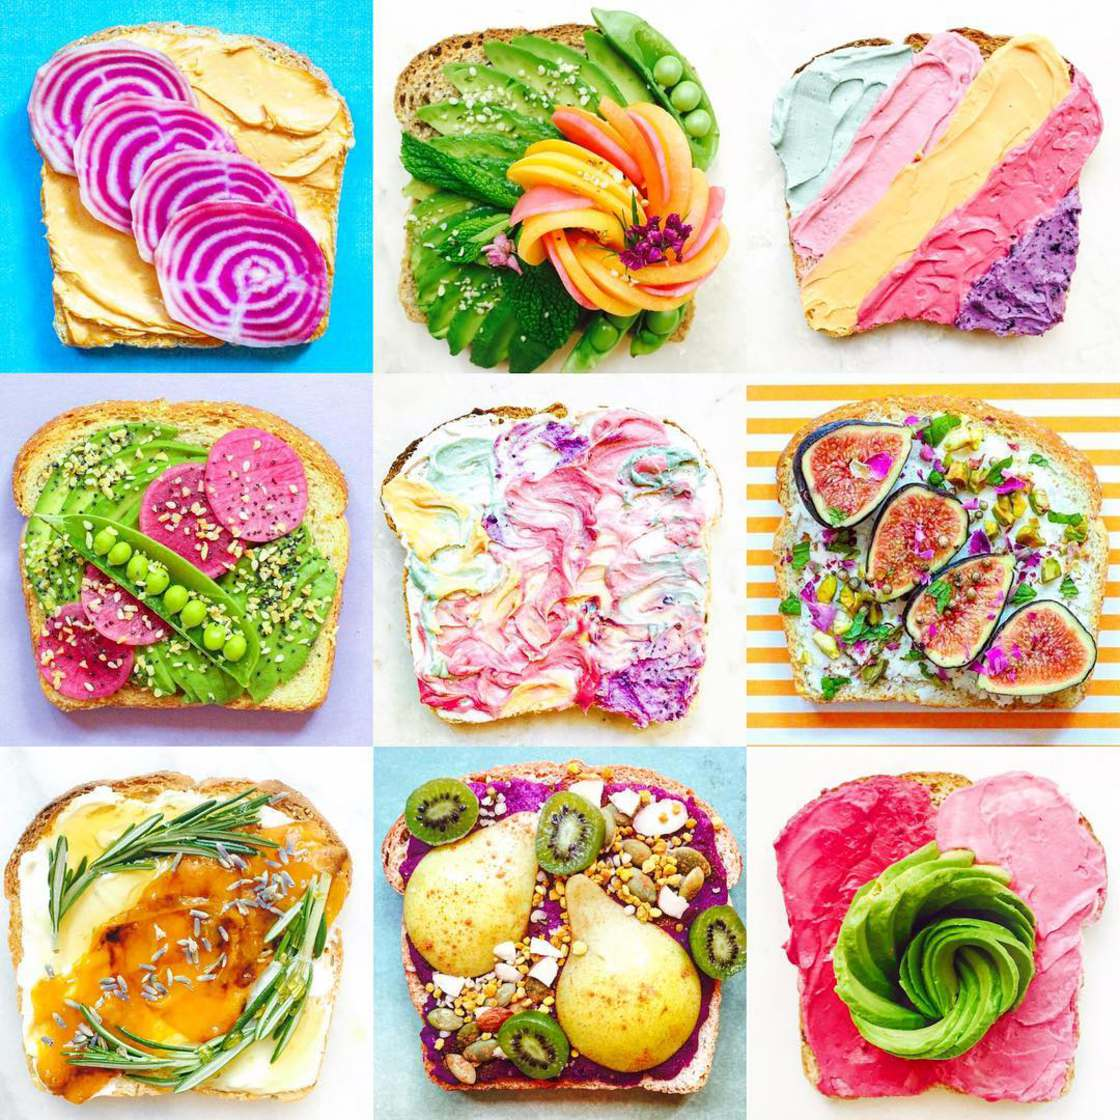 Unicorn Toast - Creating natural and ultra-colorful toasts